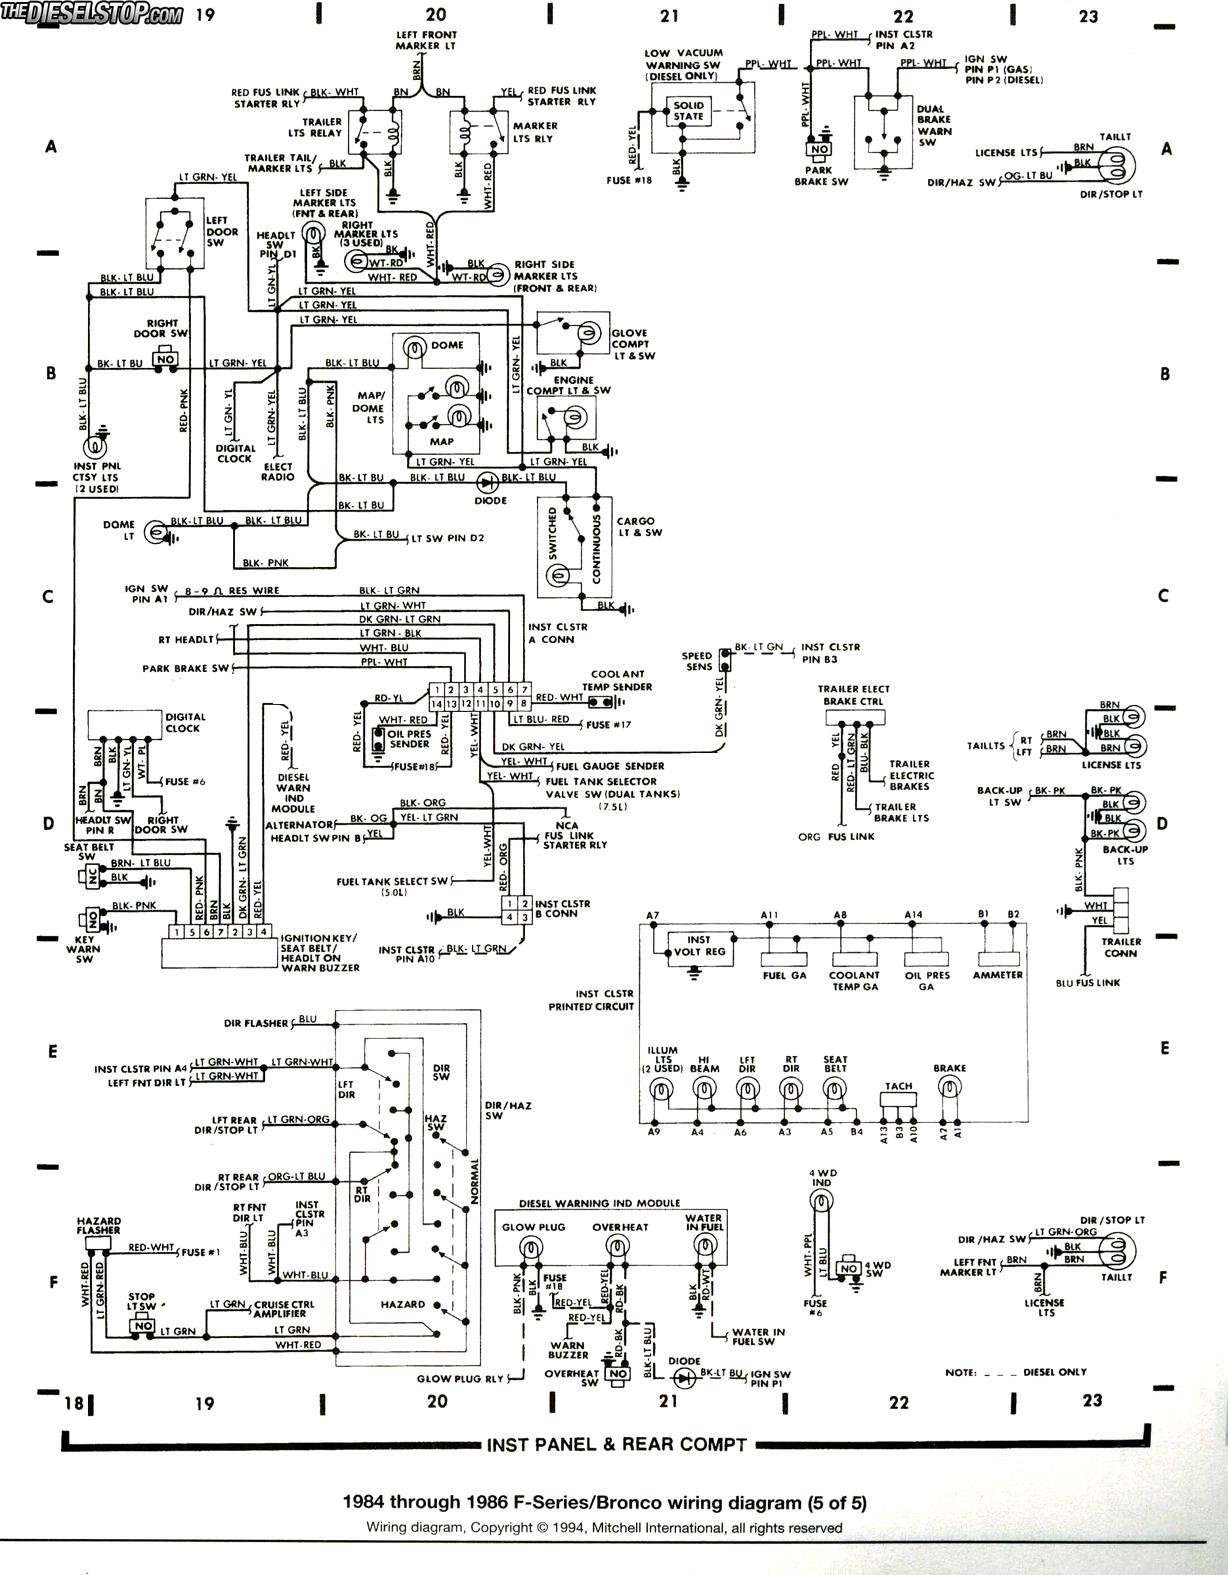 1995 ford f250 starter solenoid wiring diagram - database